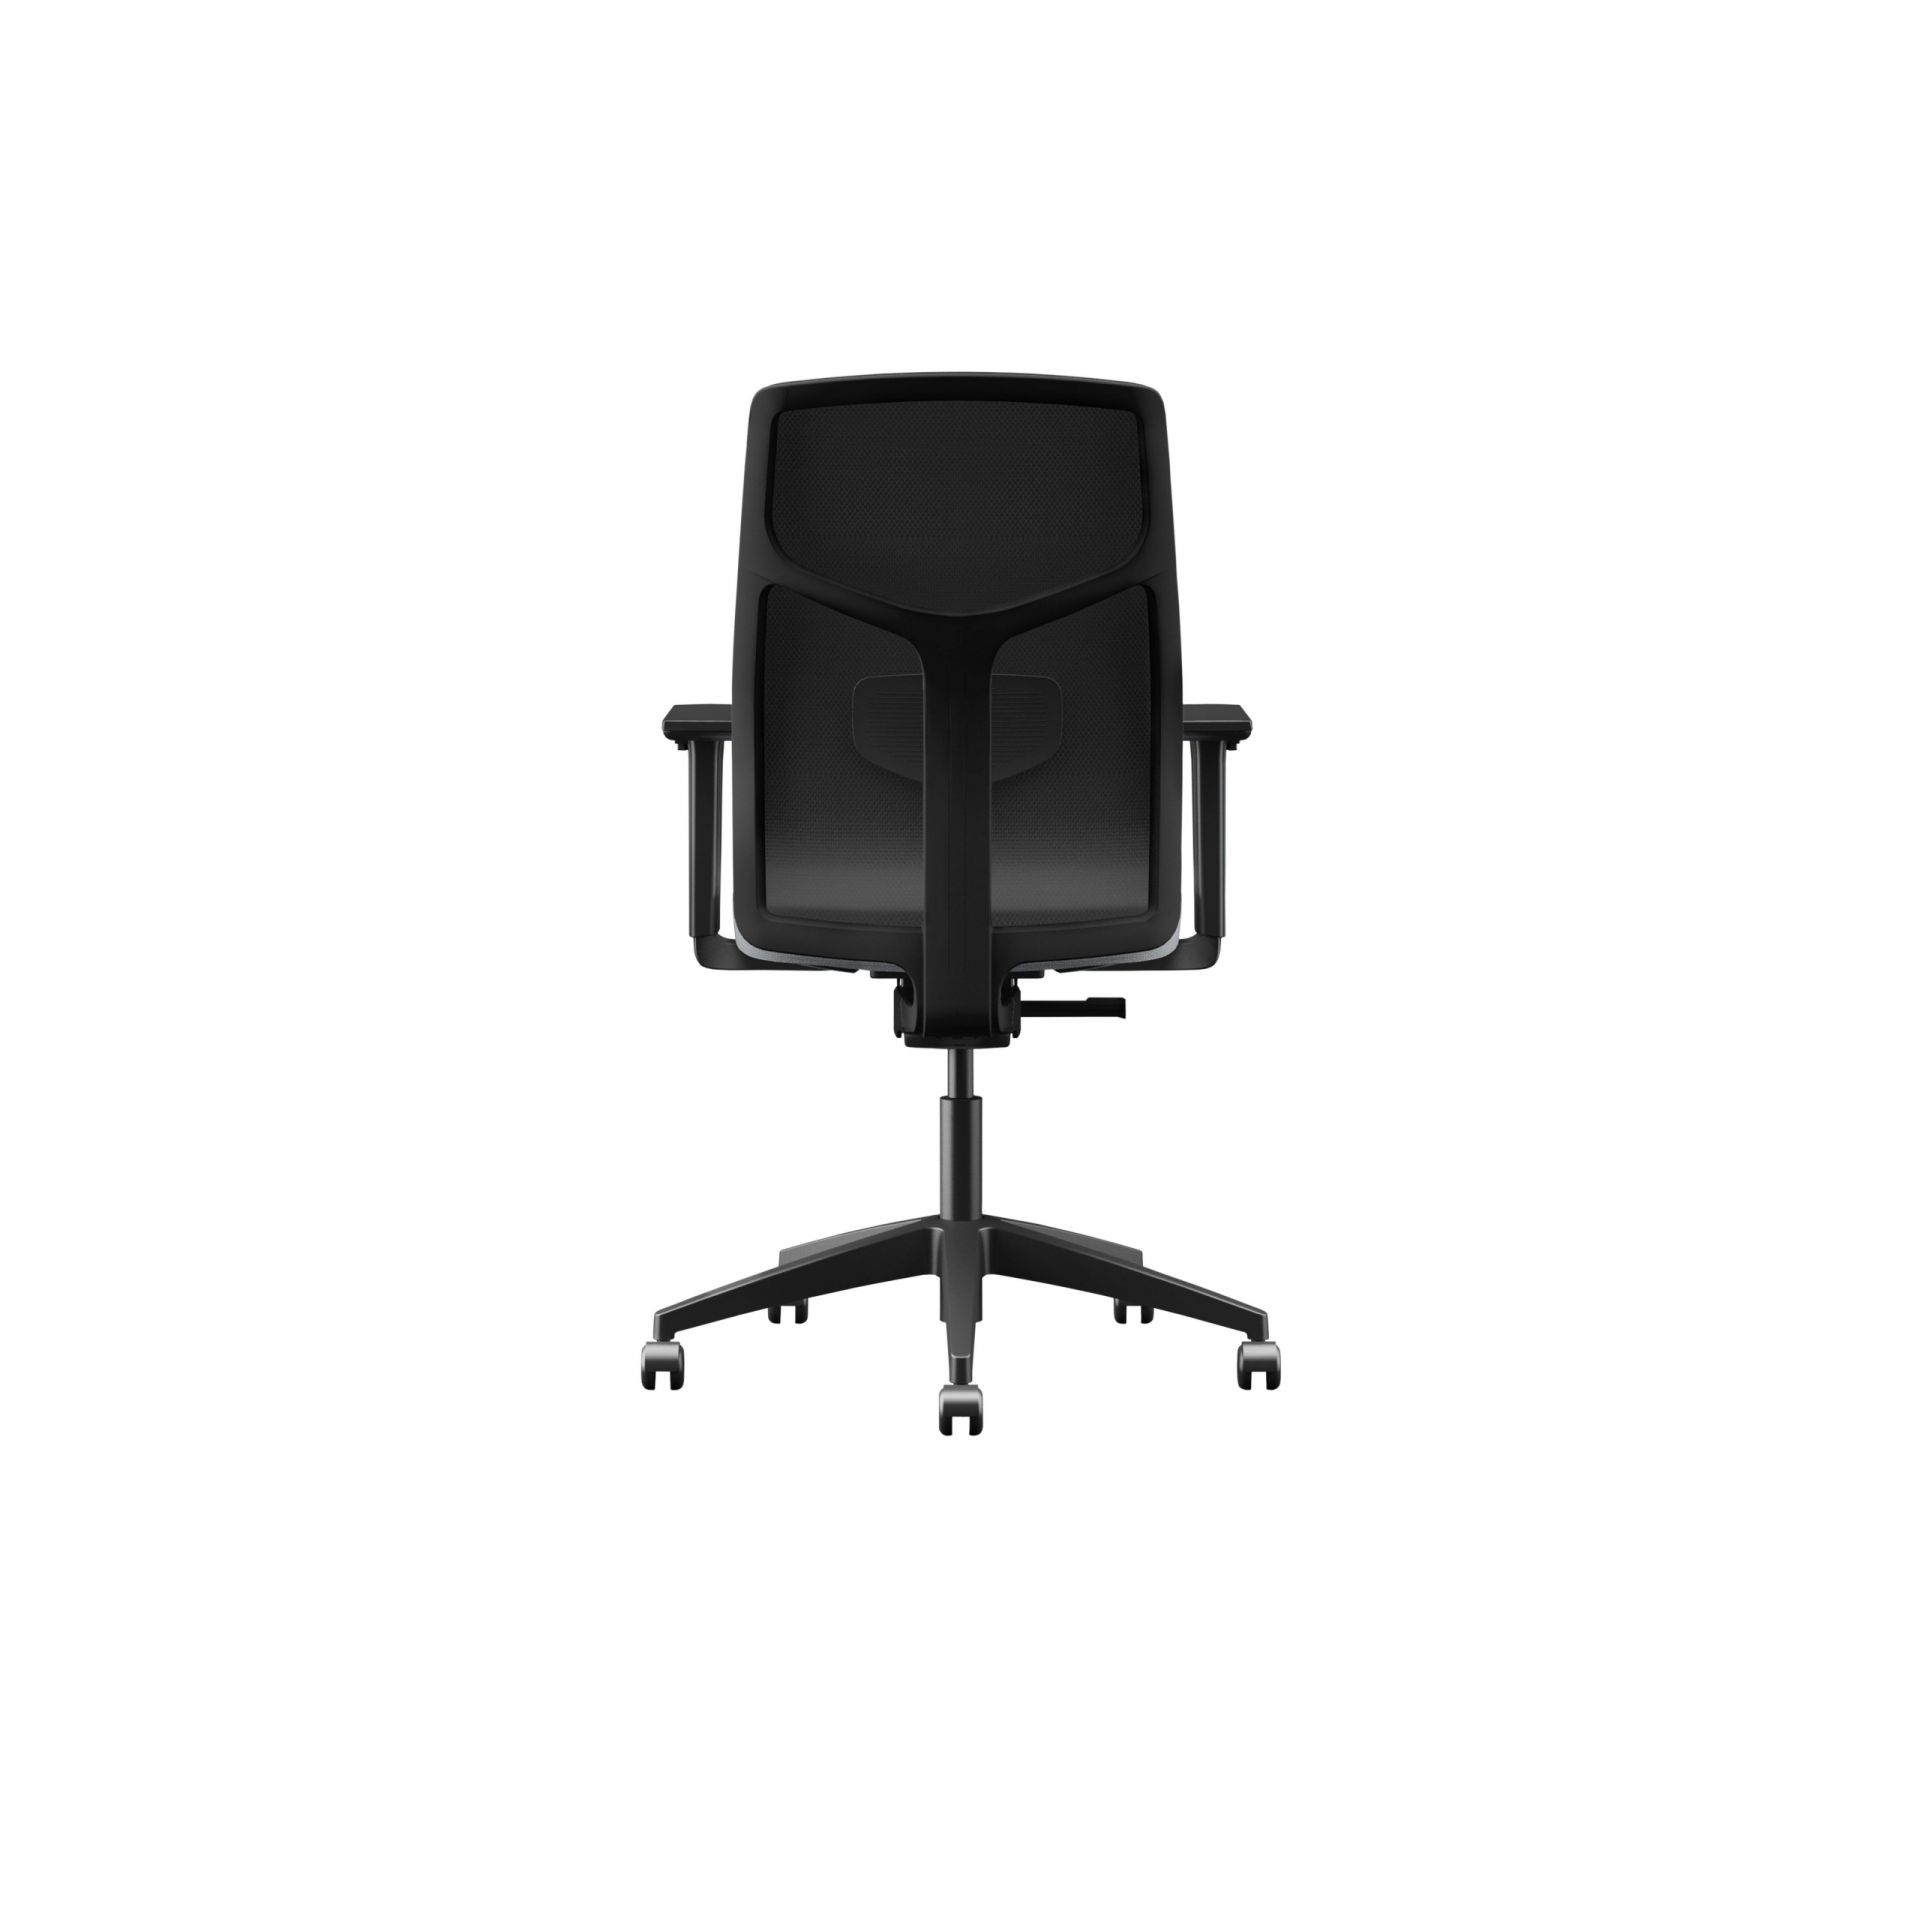 Yoyo Office chair with open mesh back product image 2